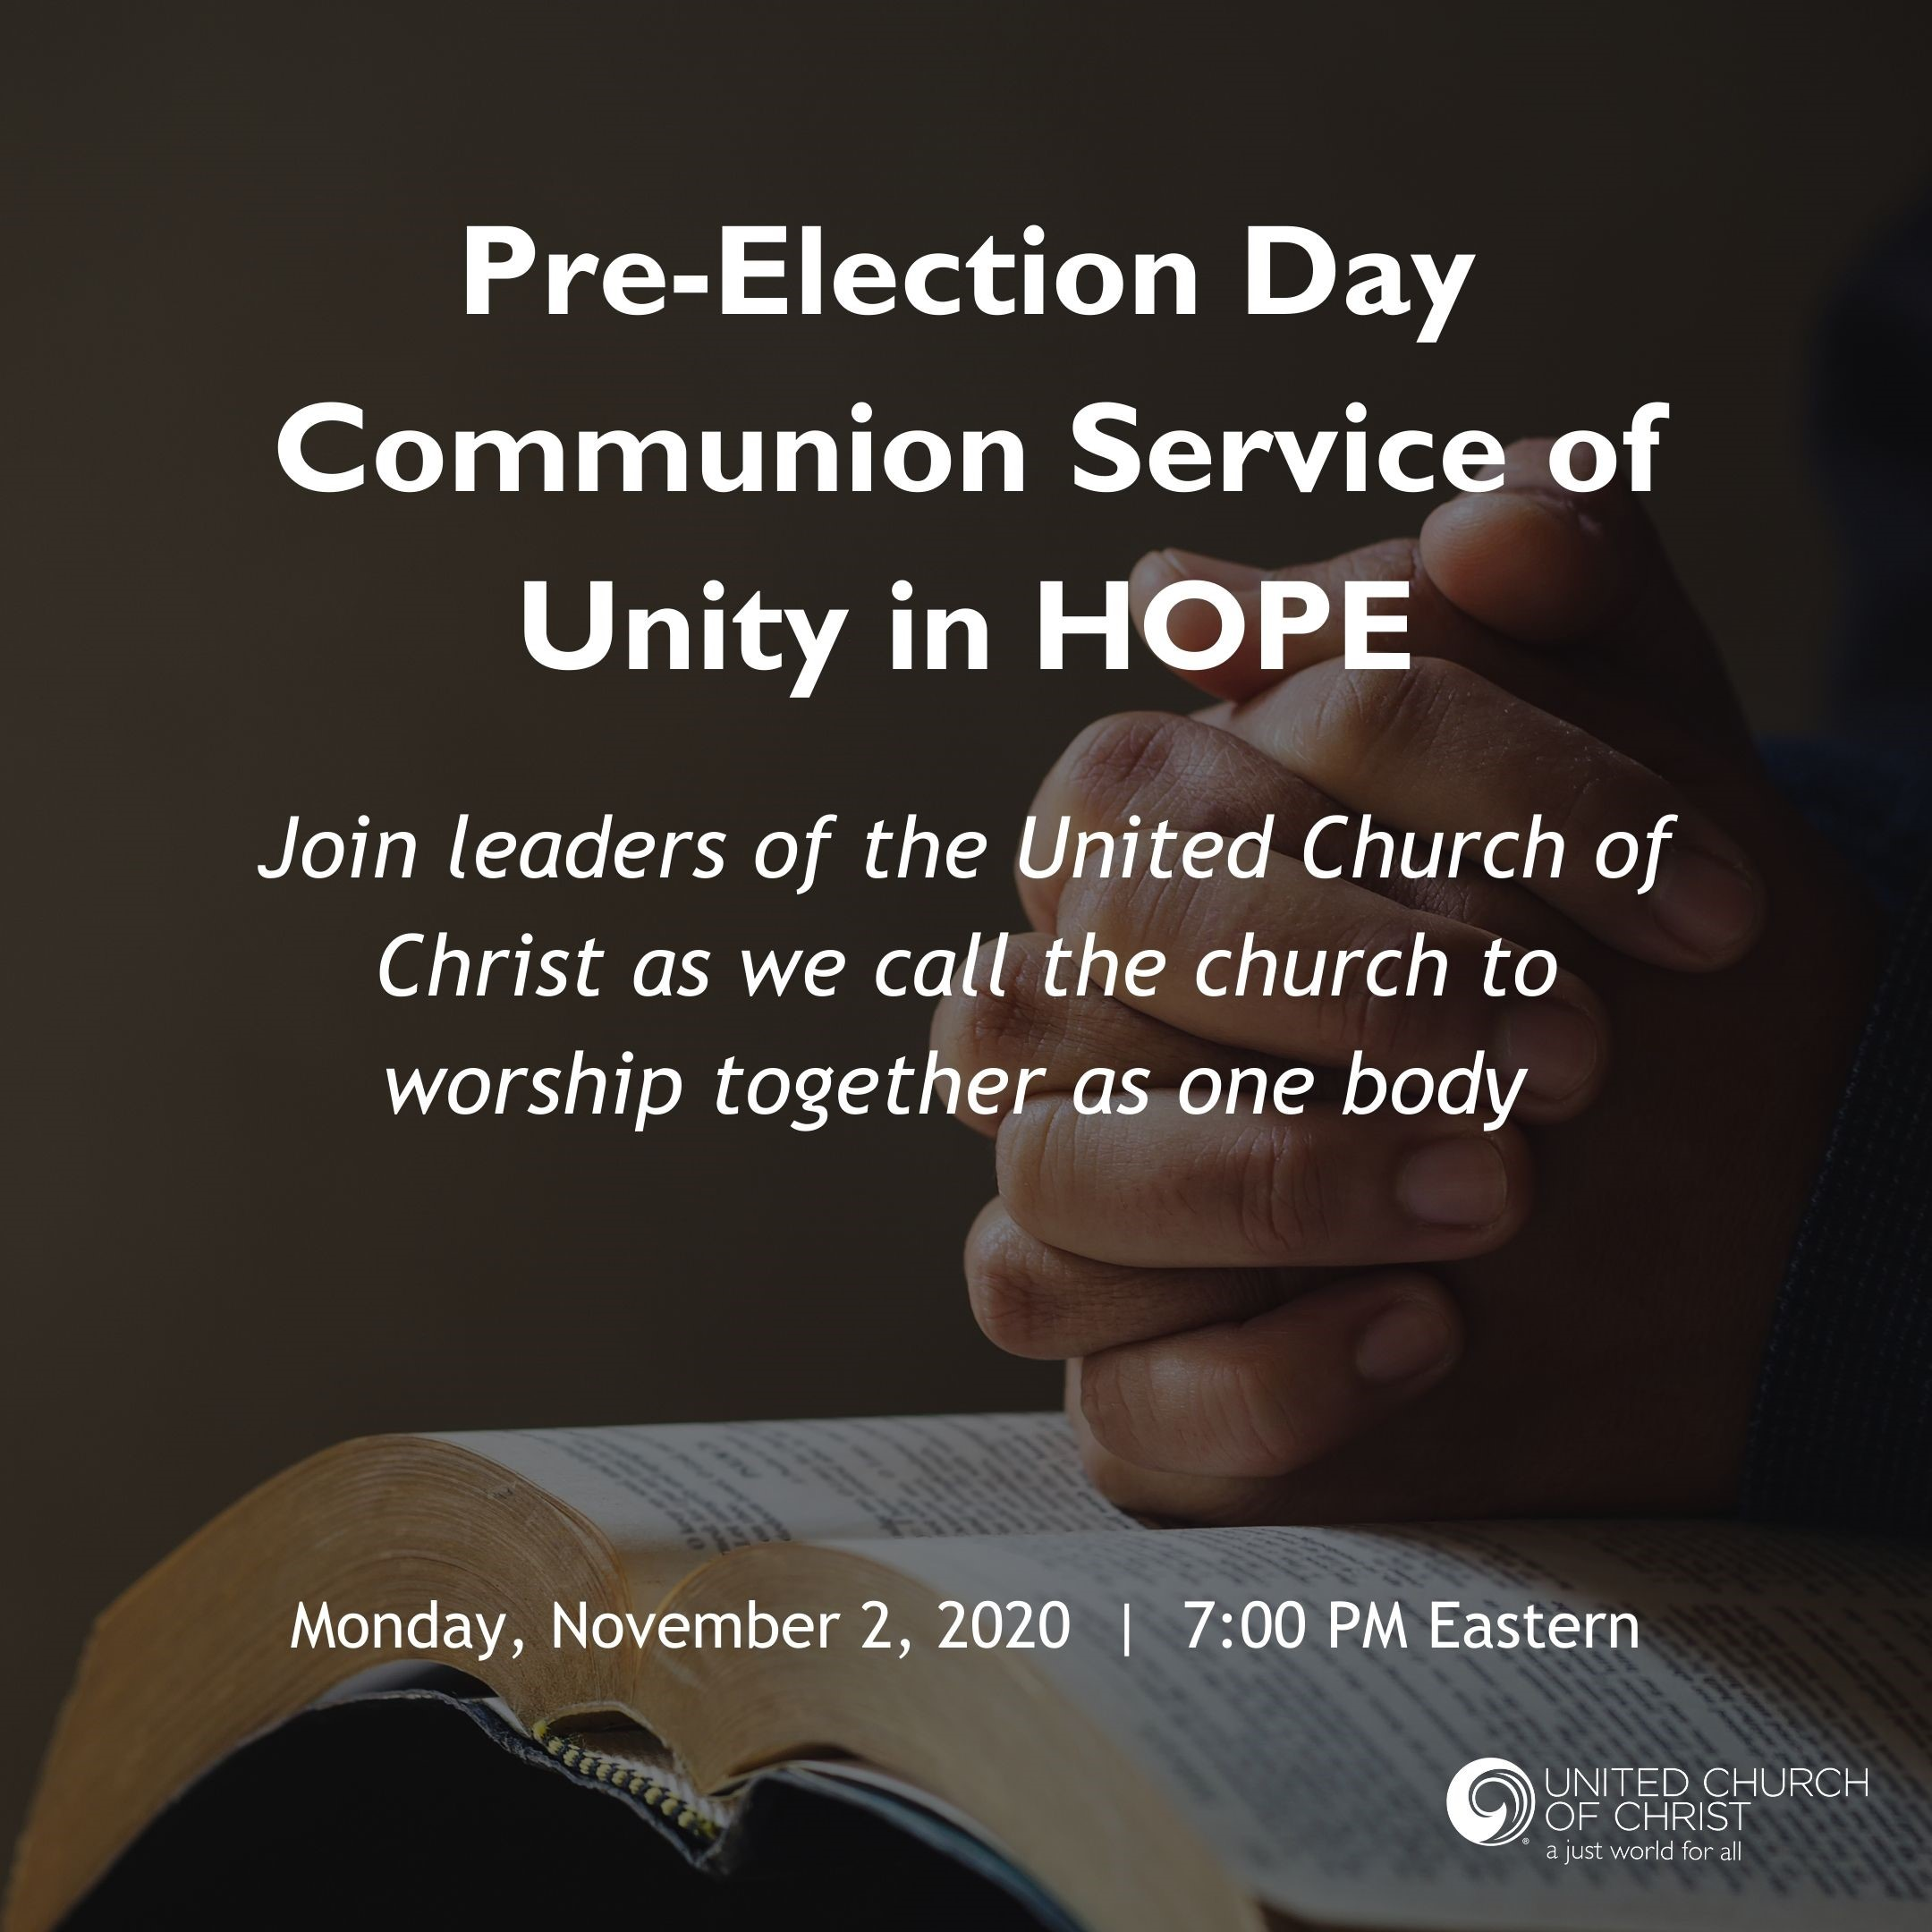 Pre-election worship service image for 11/2/20